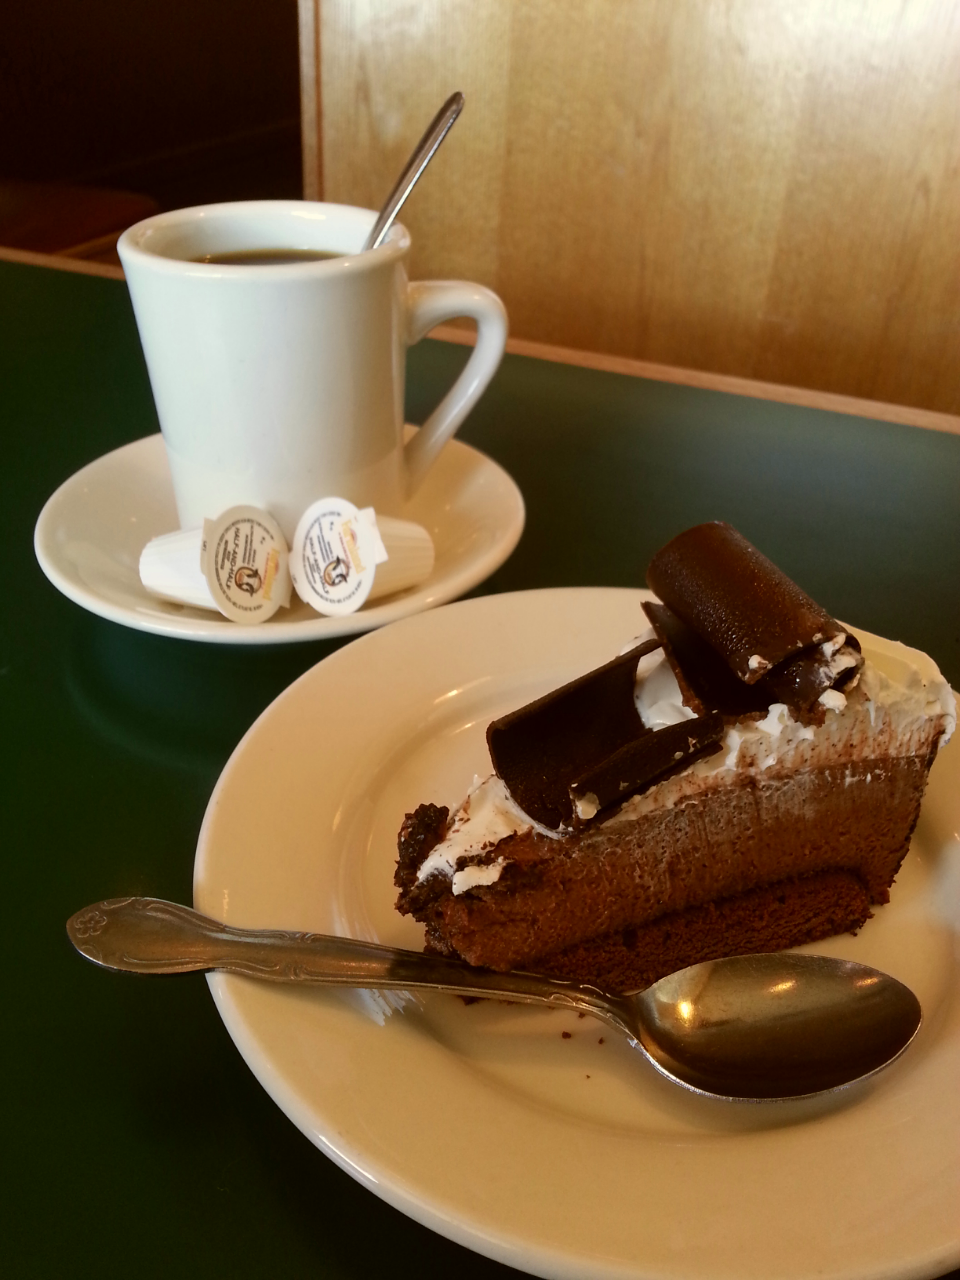 Copy of Copy of Chocolate Mousse Cake and Coffee!